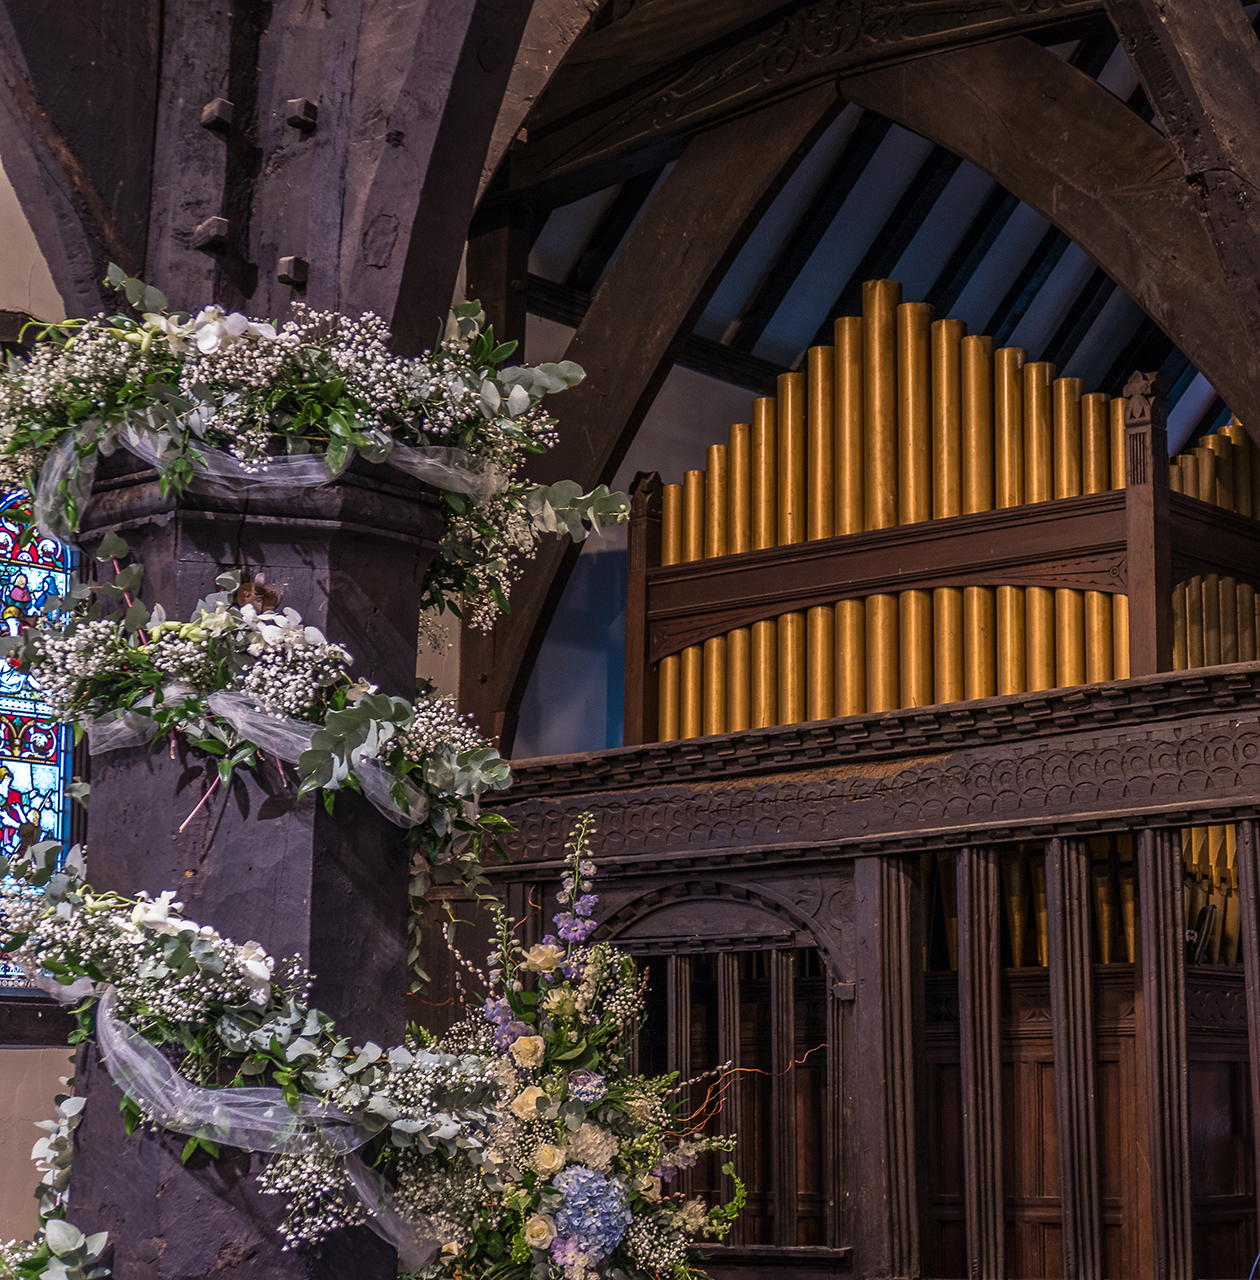 Organ pipes with floral pillar